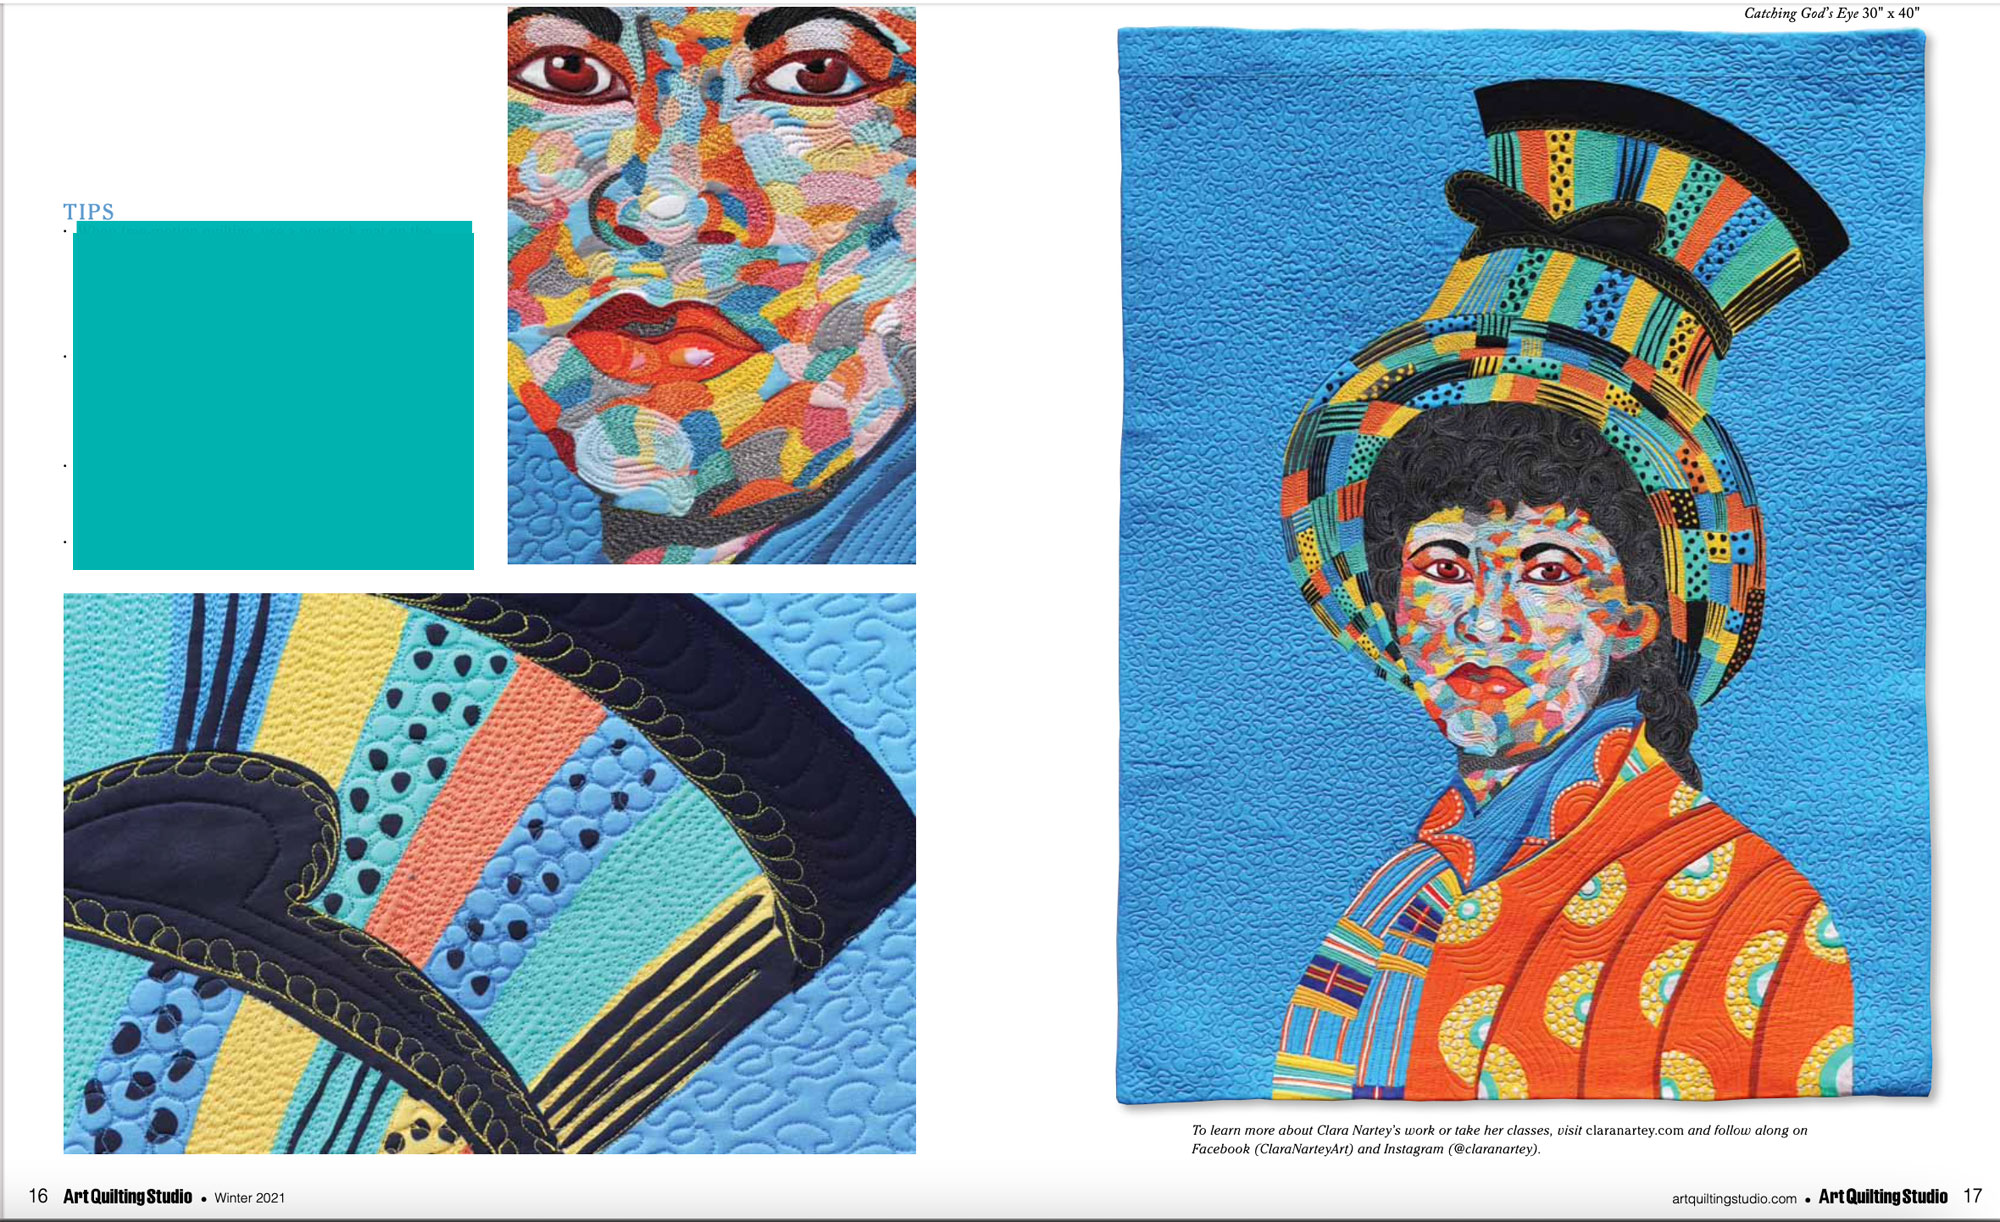 Art Quilting Studio magazine feature plus how to get published